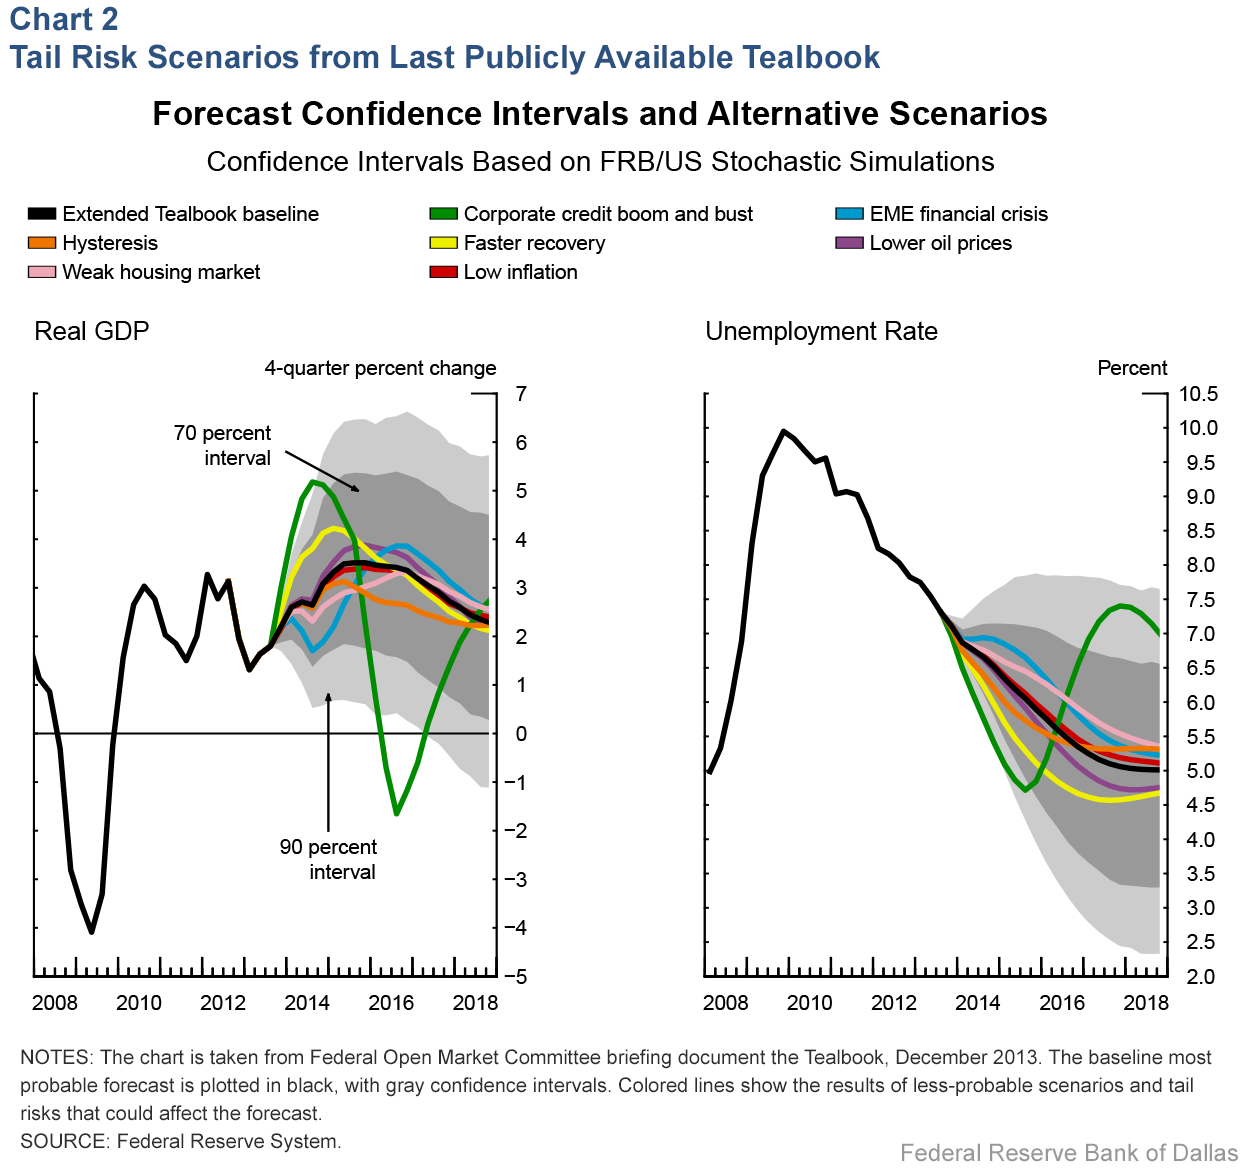 Chart 2: Tail Risk Scenarios from Last Publicly Available Tealbook